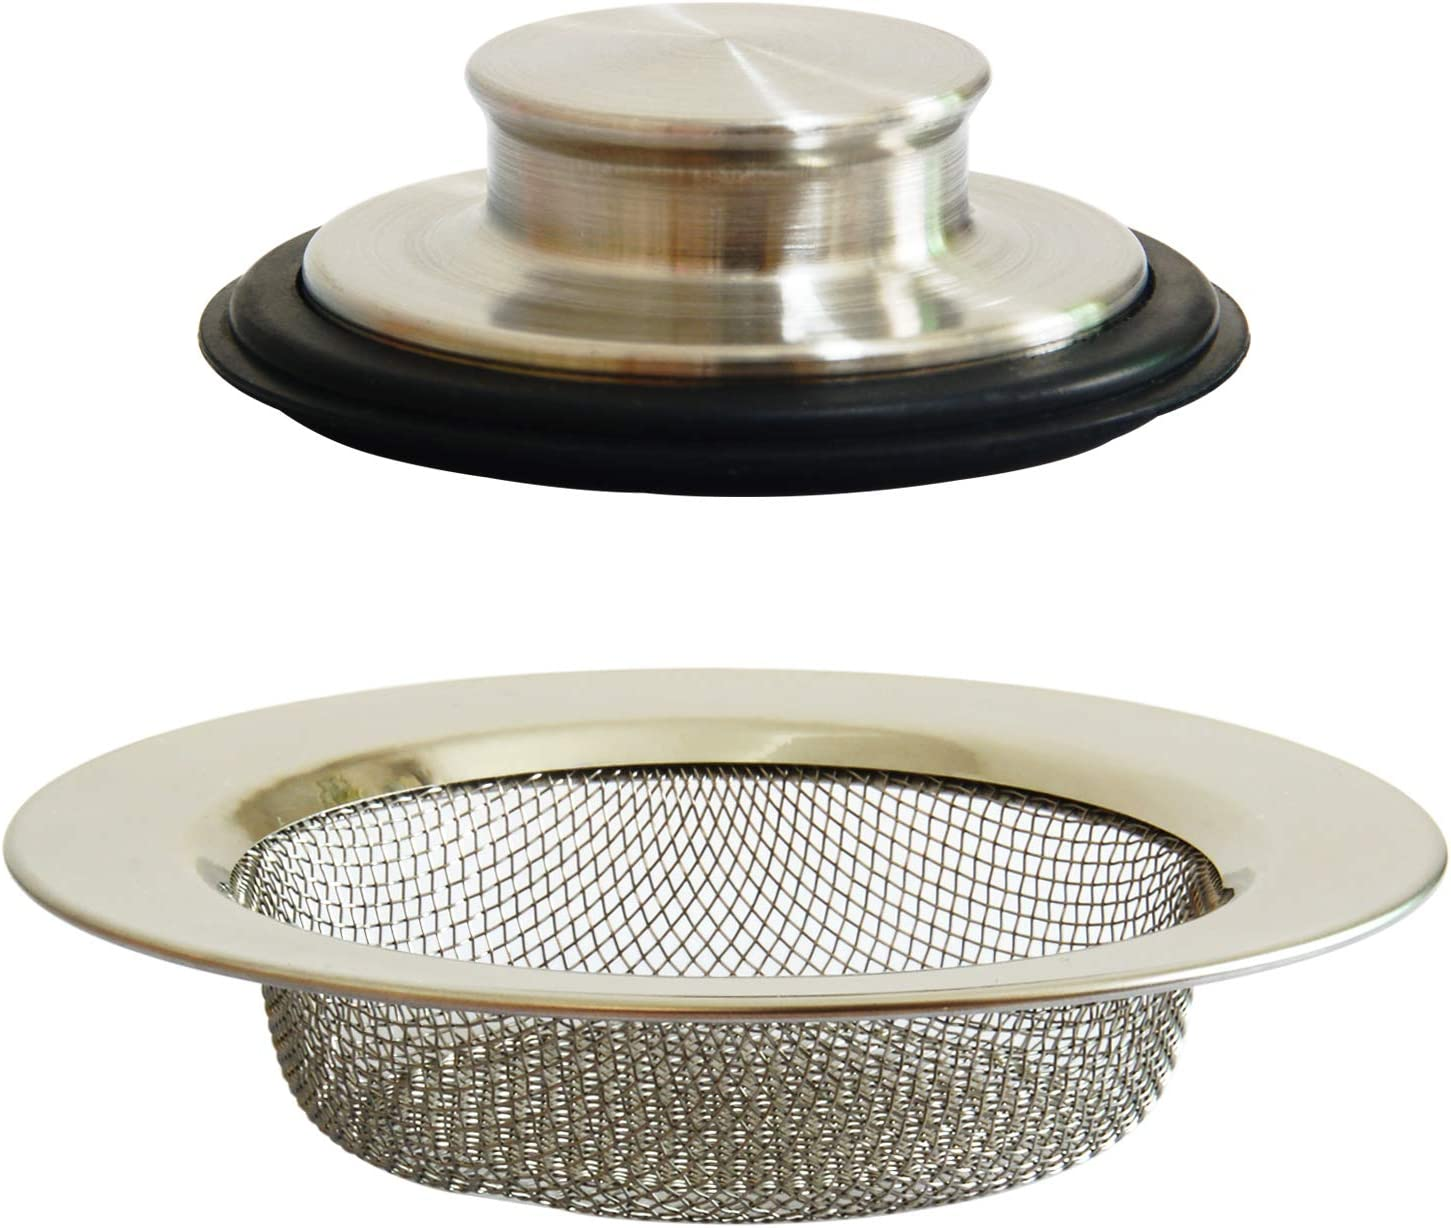 2PCS Professional Sink Stopper and Strainers, Kitchen Sink Drain Strainer Basket, Garbage Disposal Stopper, Stainless Steel Filter, Anty Clogging Mesh Plug Cover for Most Drain Standard 3-1/2 Inch